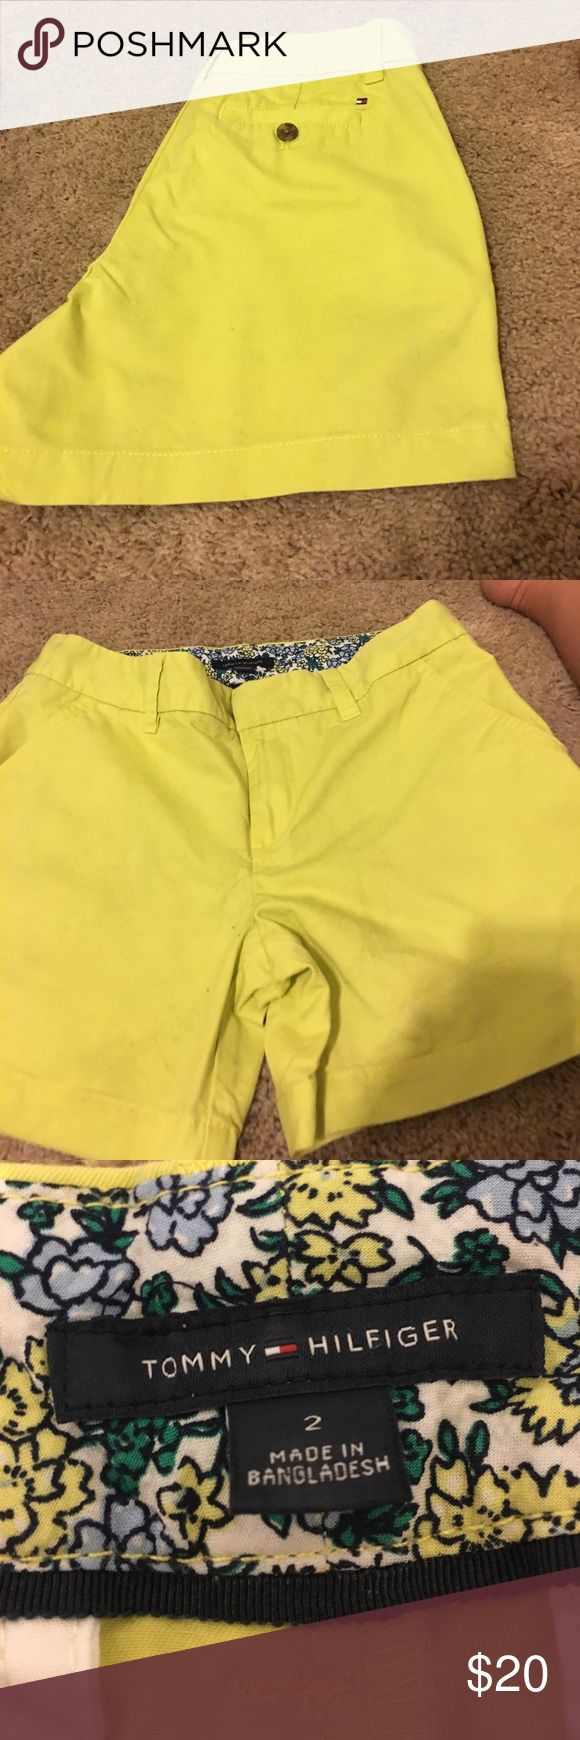 Shorts by Tommy Hilfiger size 2 lime green Tommy Hilfiger shorts size 2 lime green/ yellow color pockets on front and back NWOT very cute shorts Tommy Hilfiger Shorts